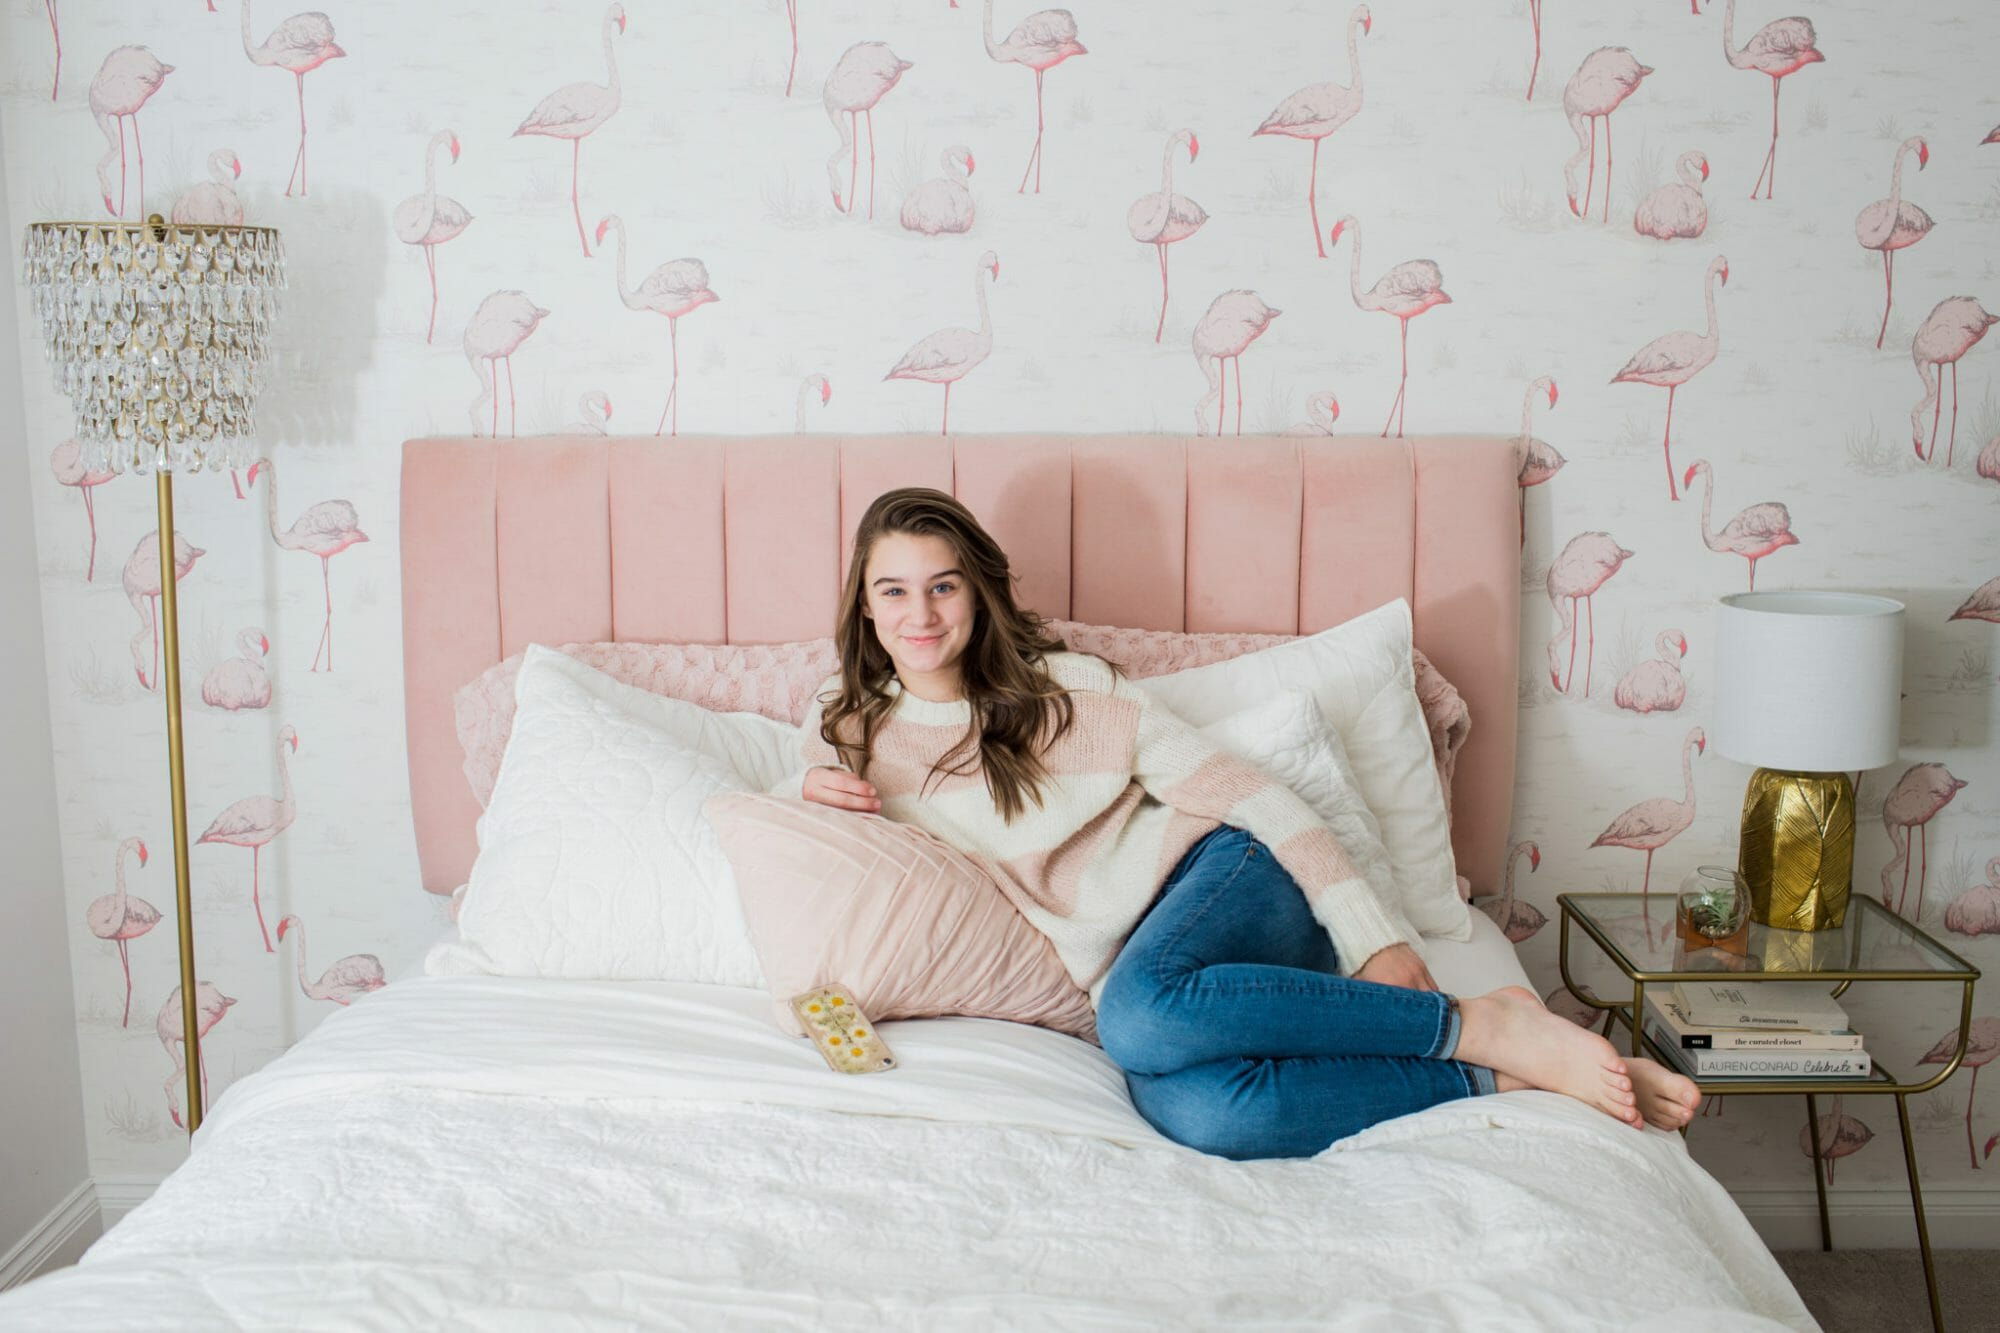 Teen Girl Bedroom Ideas | how to decorate a teen bedroom | feminine teen bedroom decor || JennyCookies.com #teenroom #bedroomdecor #femininebedroom #homedecor #jennycookies